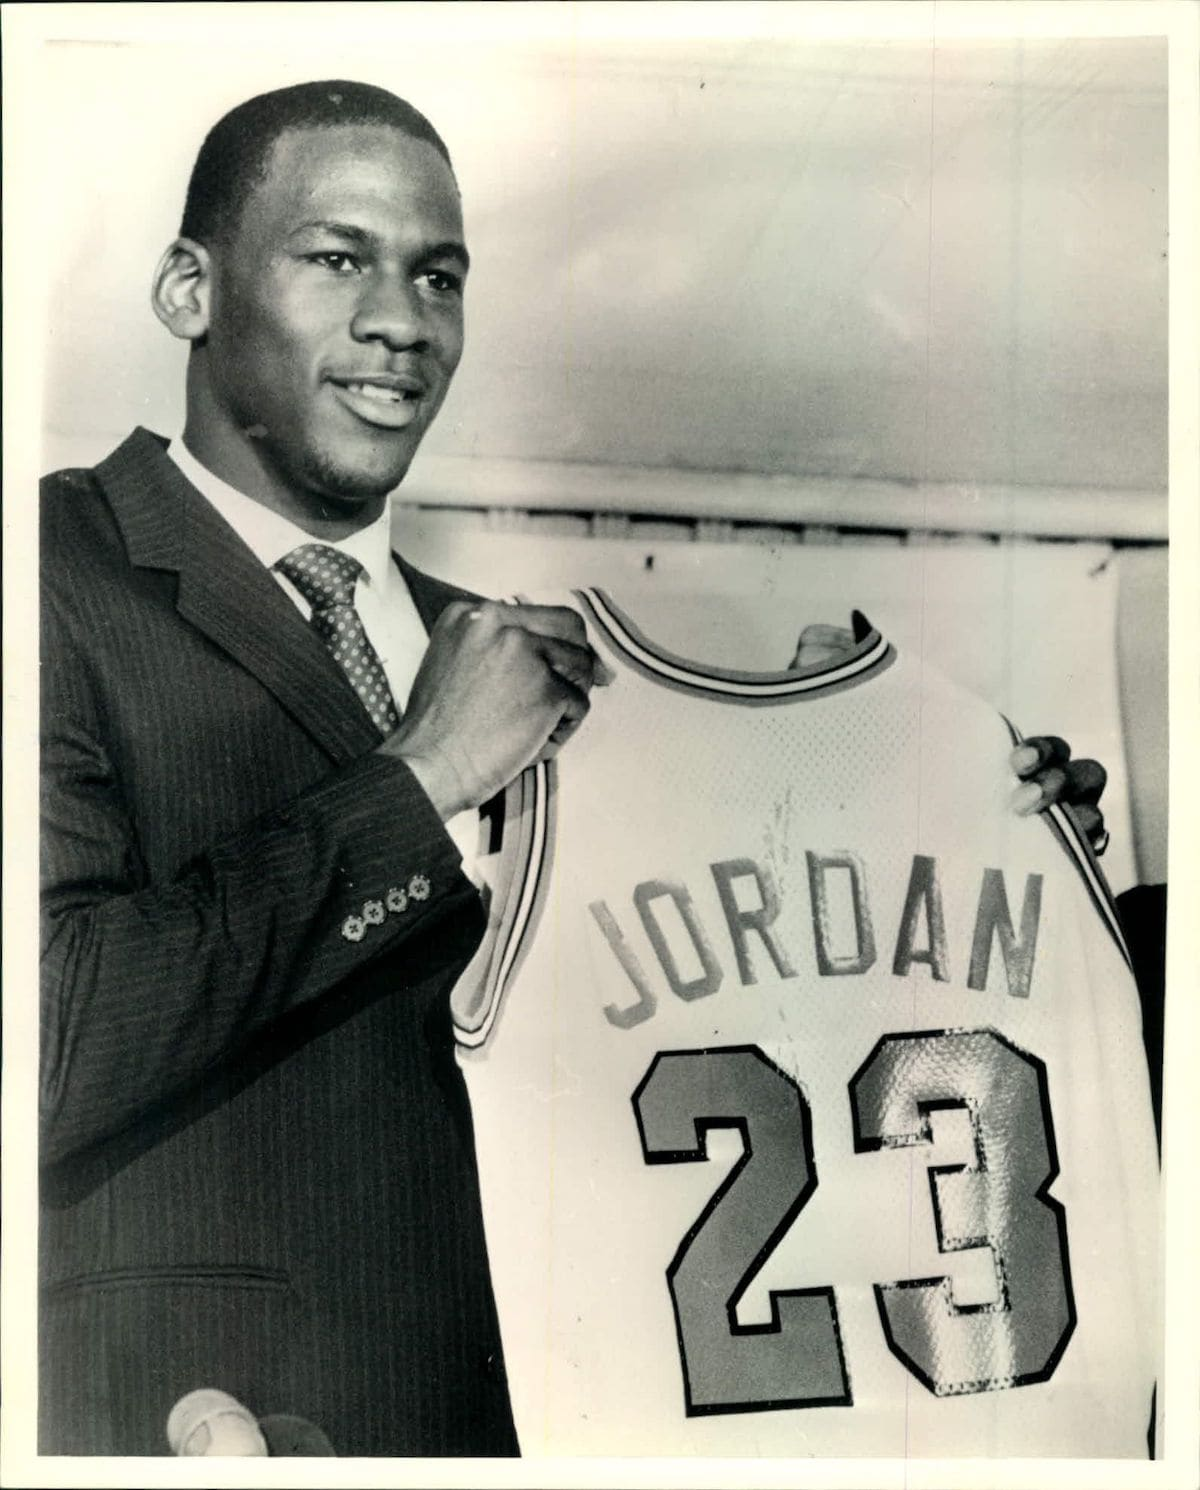 Michael Jordan holds up a Chicago Bulls jersey